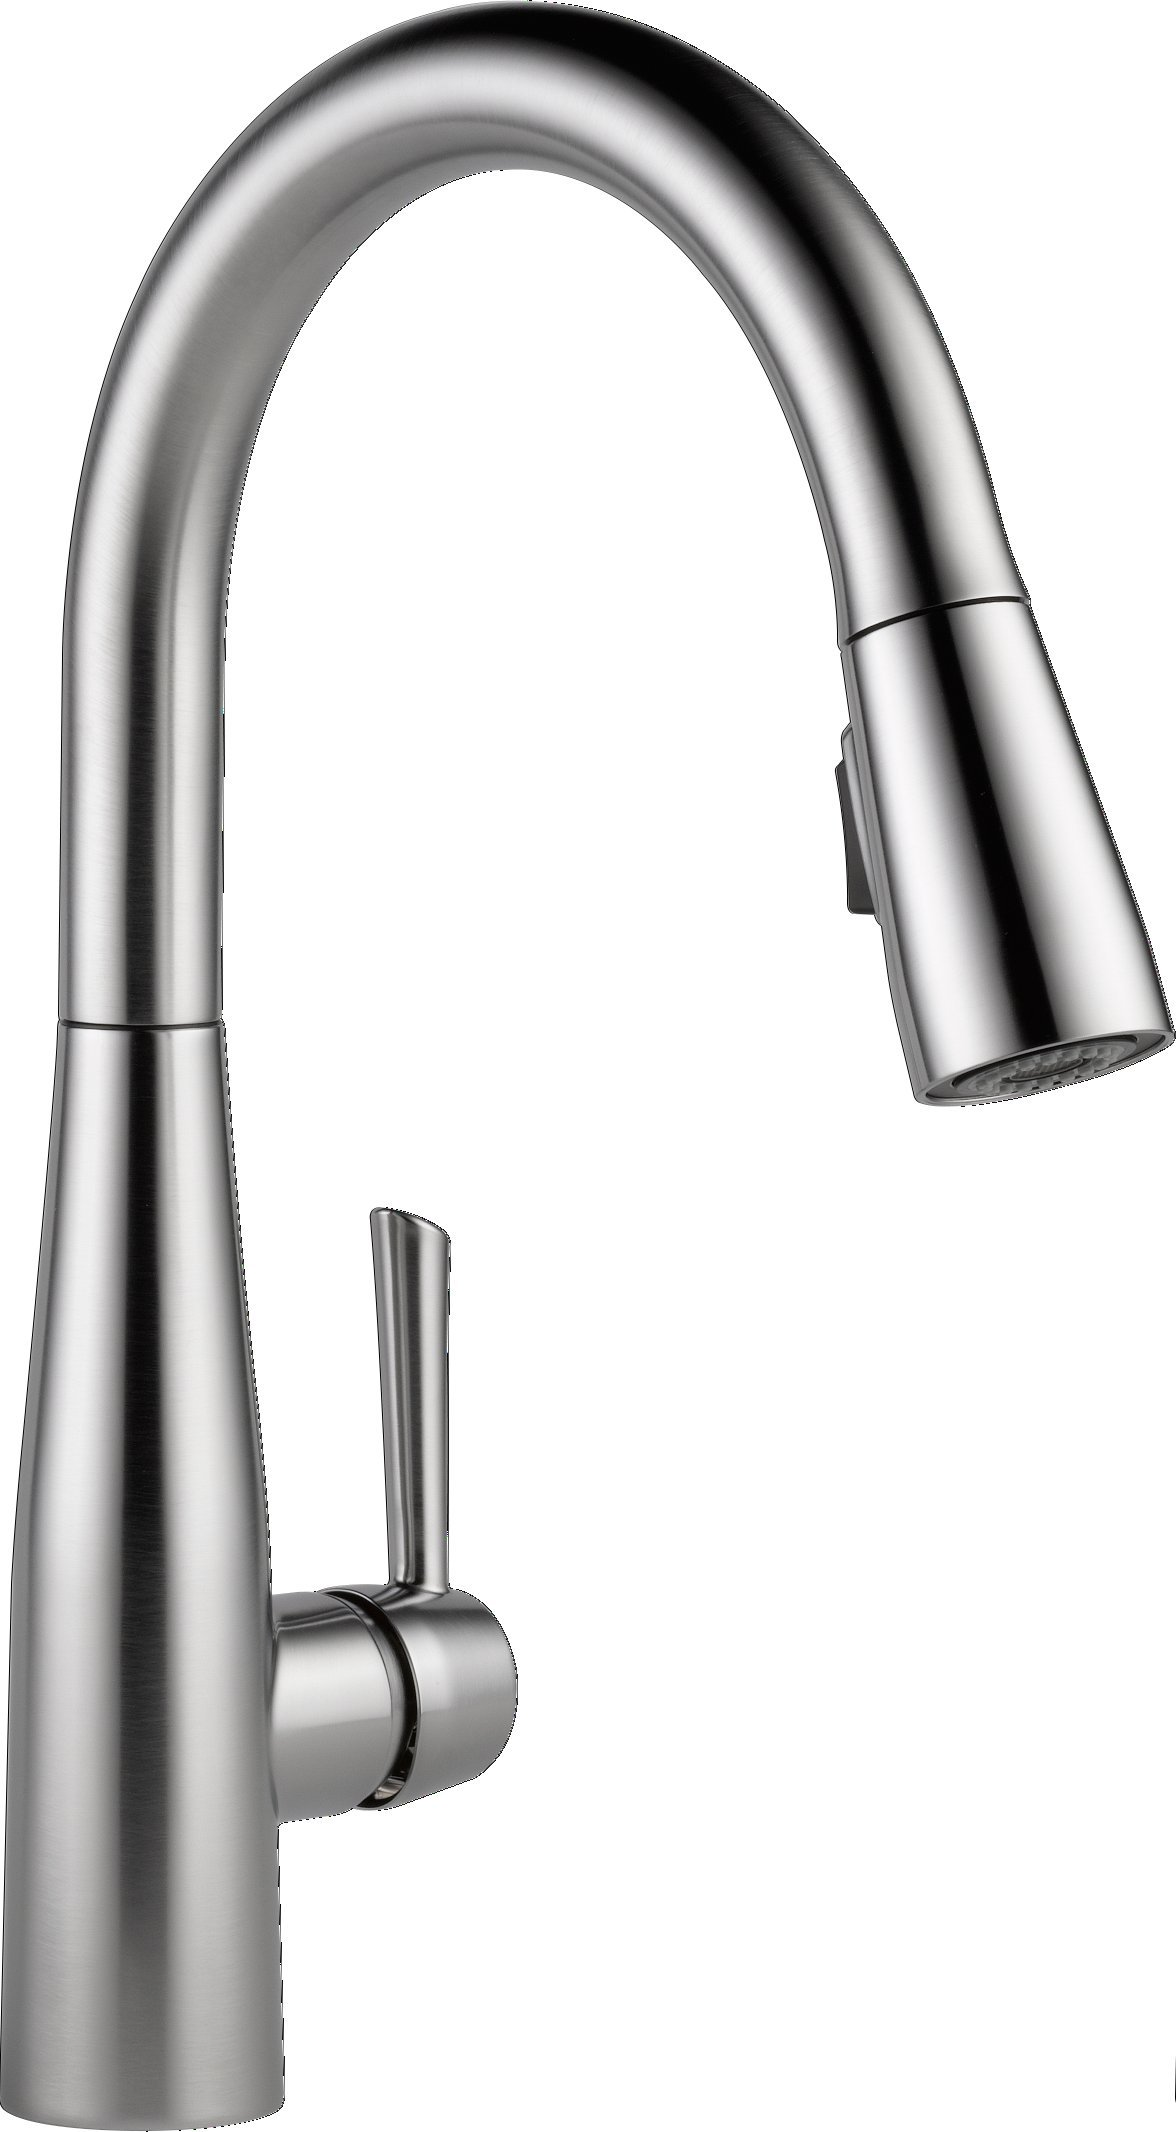 Delta Faucet Essa Single-Handle Kitchen Sink Faucet with Pull Down Sprayer and Magnetic Docking Spray Head, Arctic Stainless 9113-AR-DST by DELTA FAUCET (Image #1)